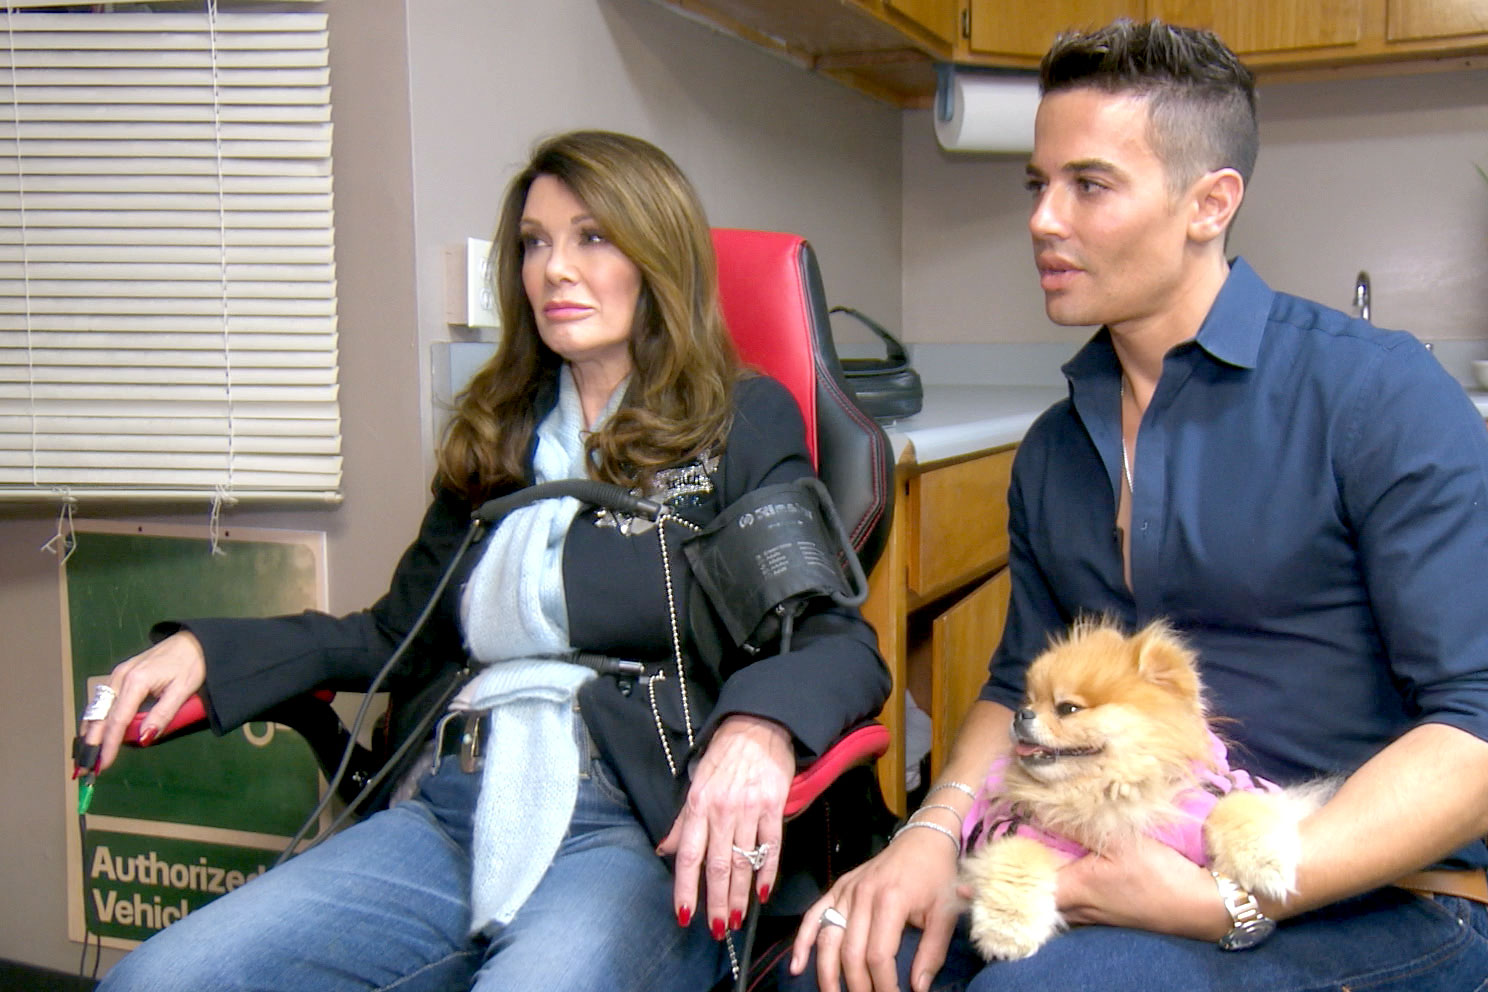 Lisa Vanderpump Takes a Lie Detector Test on The Real Housewives of Beverly Hills